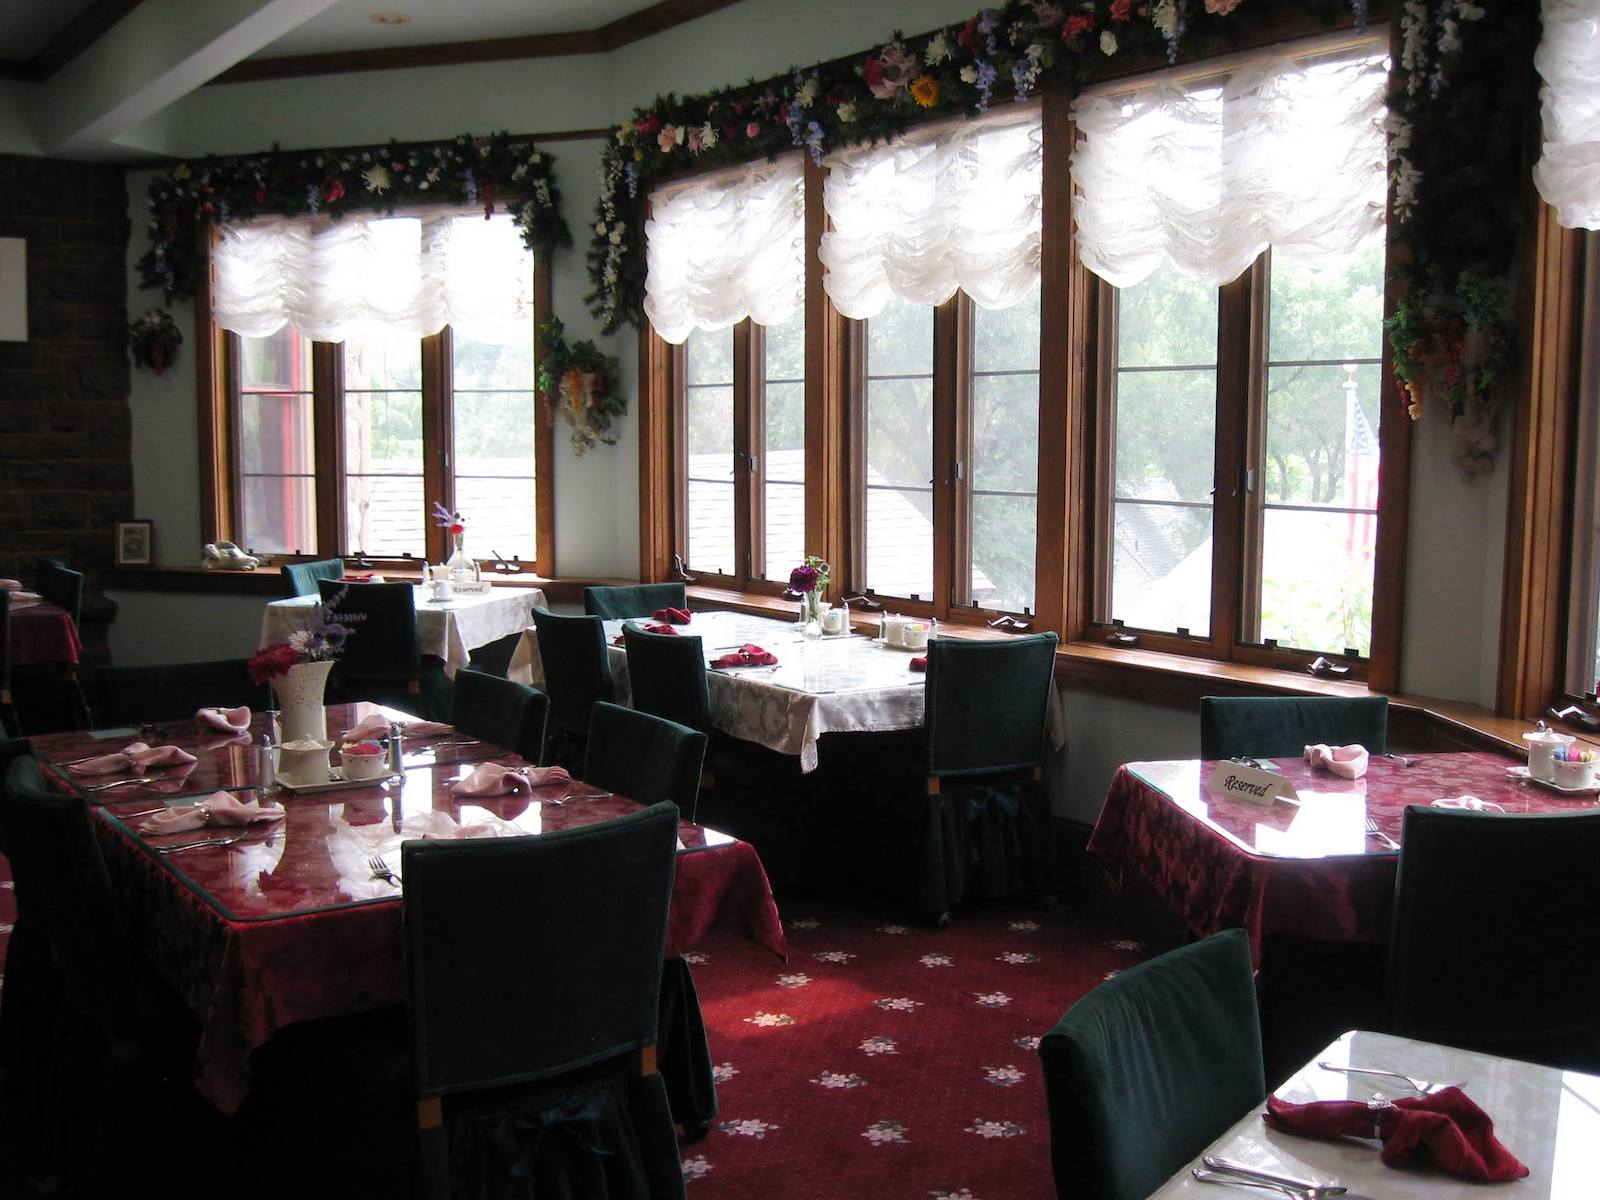 Queen Parlour's Tearoom at Miramont Castle Museum, CO